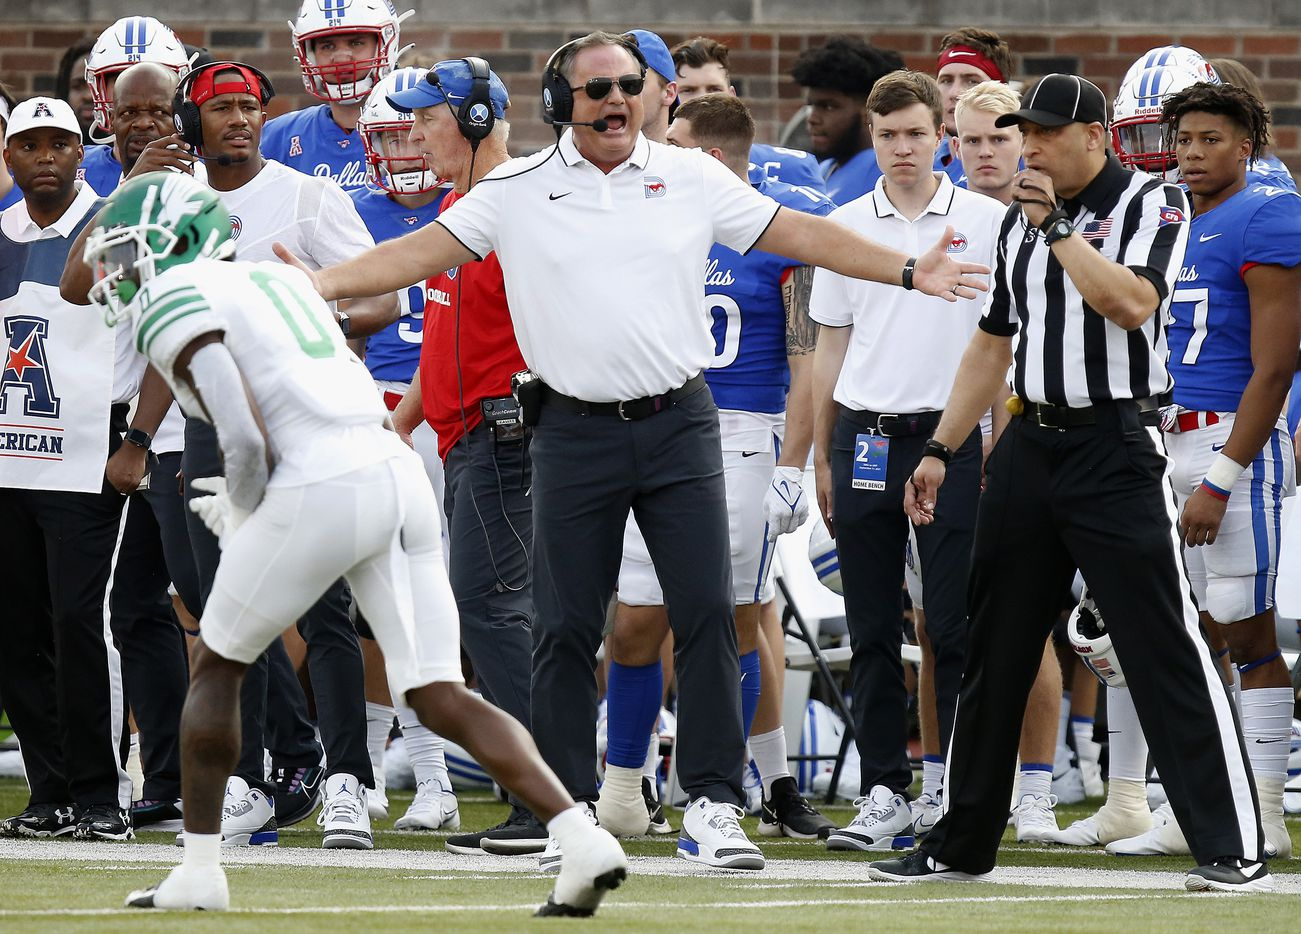 Southern Methodist Mustangs head coach Sonny Dykes questions a no call during the first half as SMU hosted UNT at Ford Stadium in Dallas on Saturday, September 11, 2021. (Stewart F. House/Special Contributor)